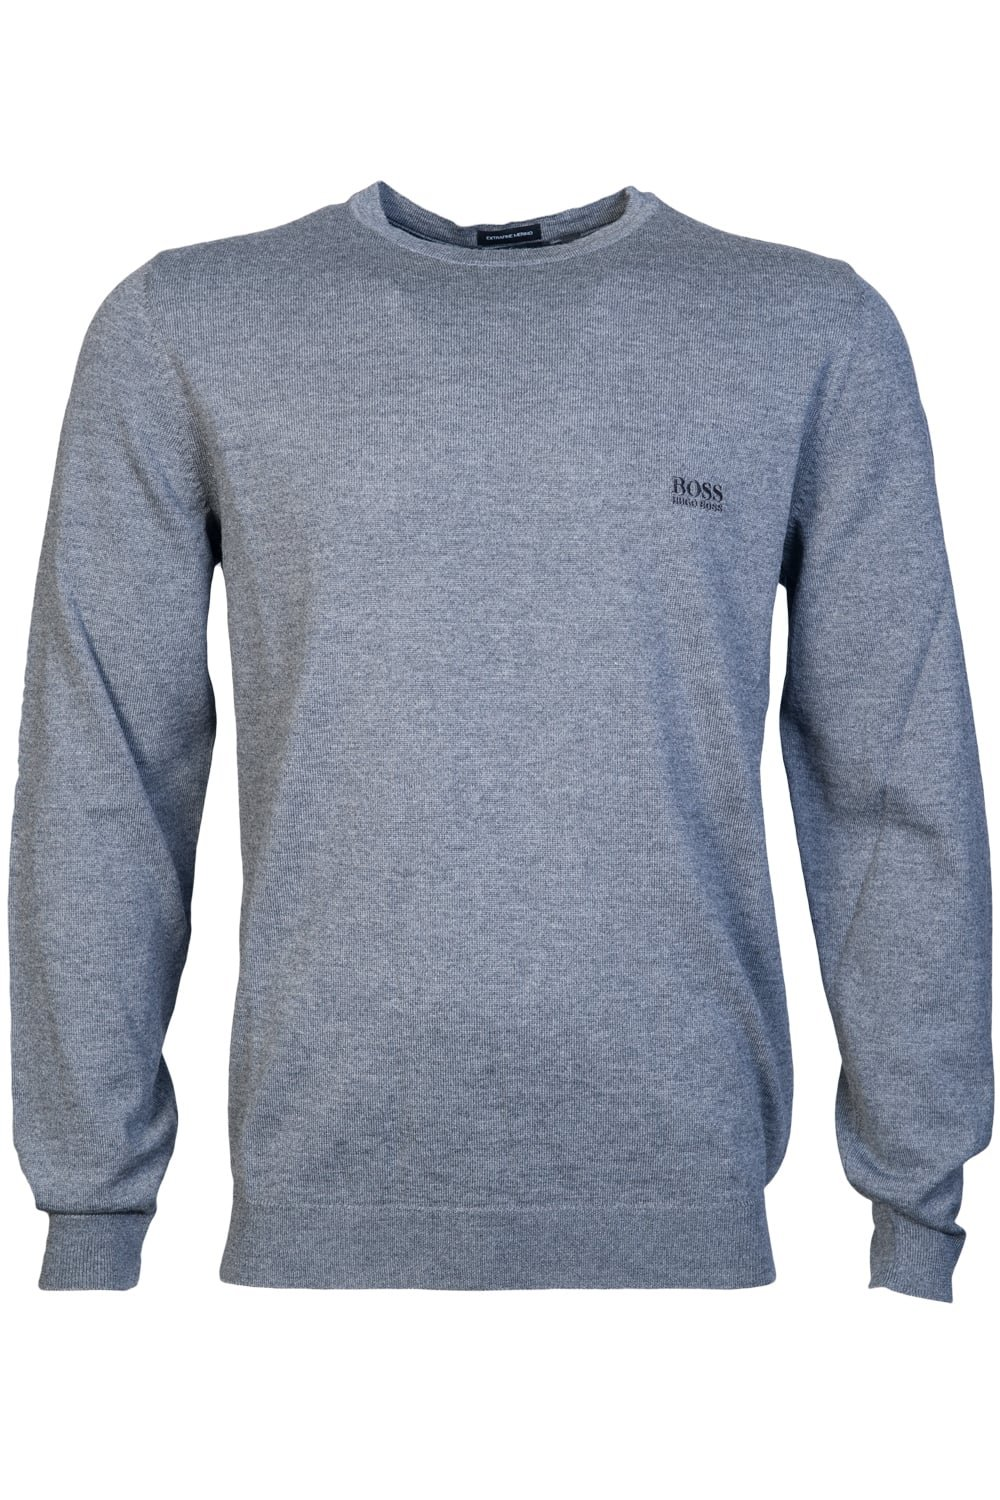 HUGO BOSS Mens Round Neck Knitwear botto-L 50373739 Size L Grey by Hugo Boss